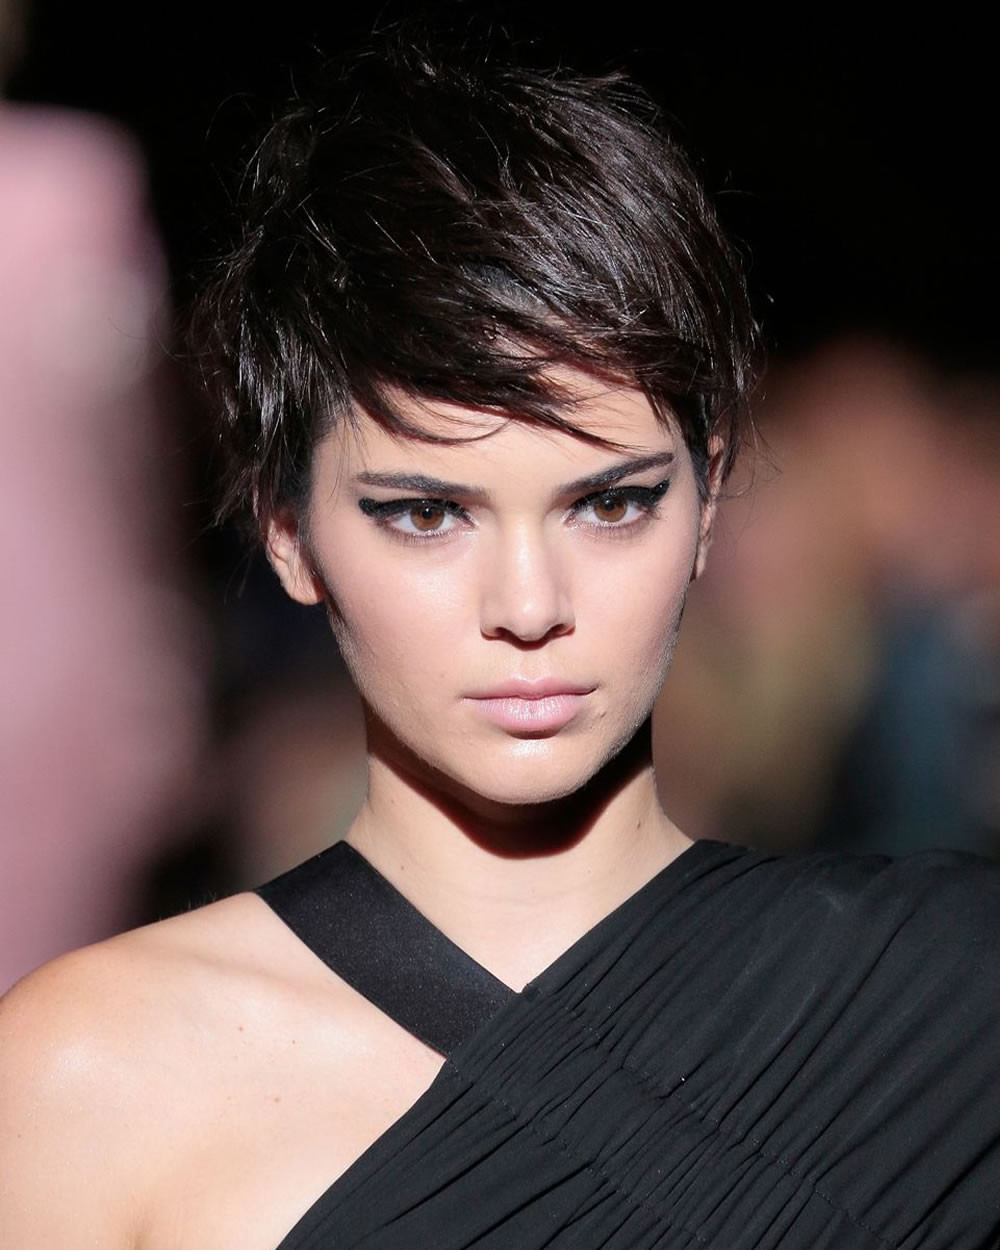 Best ideas about Trending Haircuts . Save or Pin 21 Trendy Short Haircut and Pixie Hairstyles You'll Now.